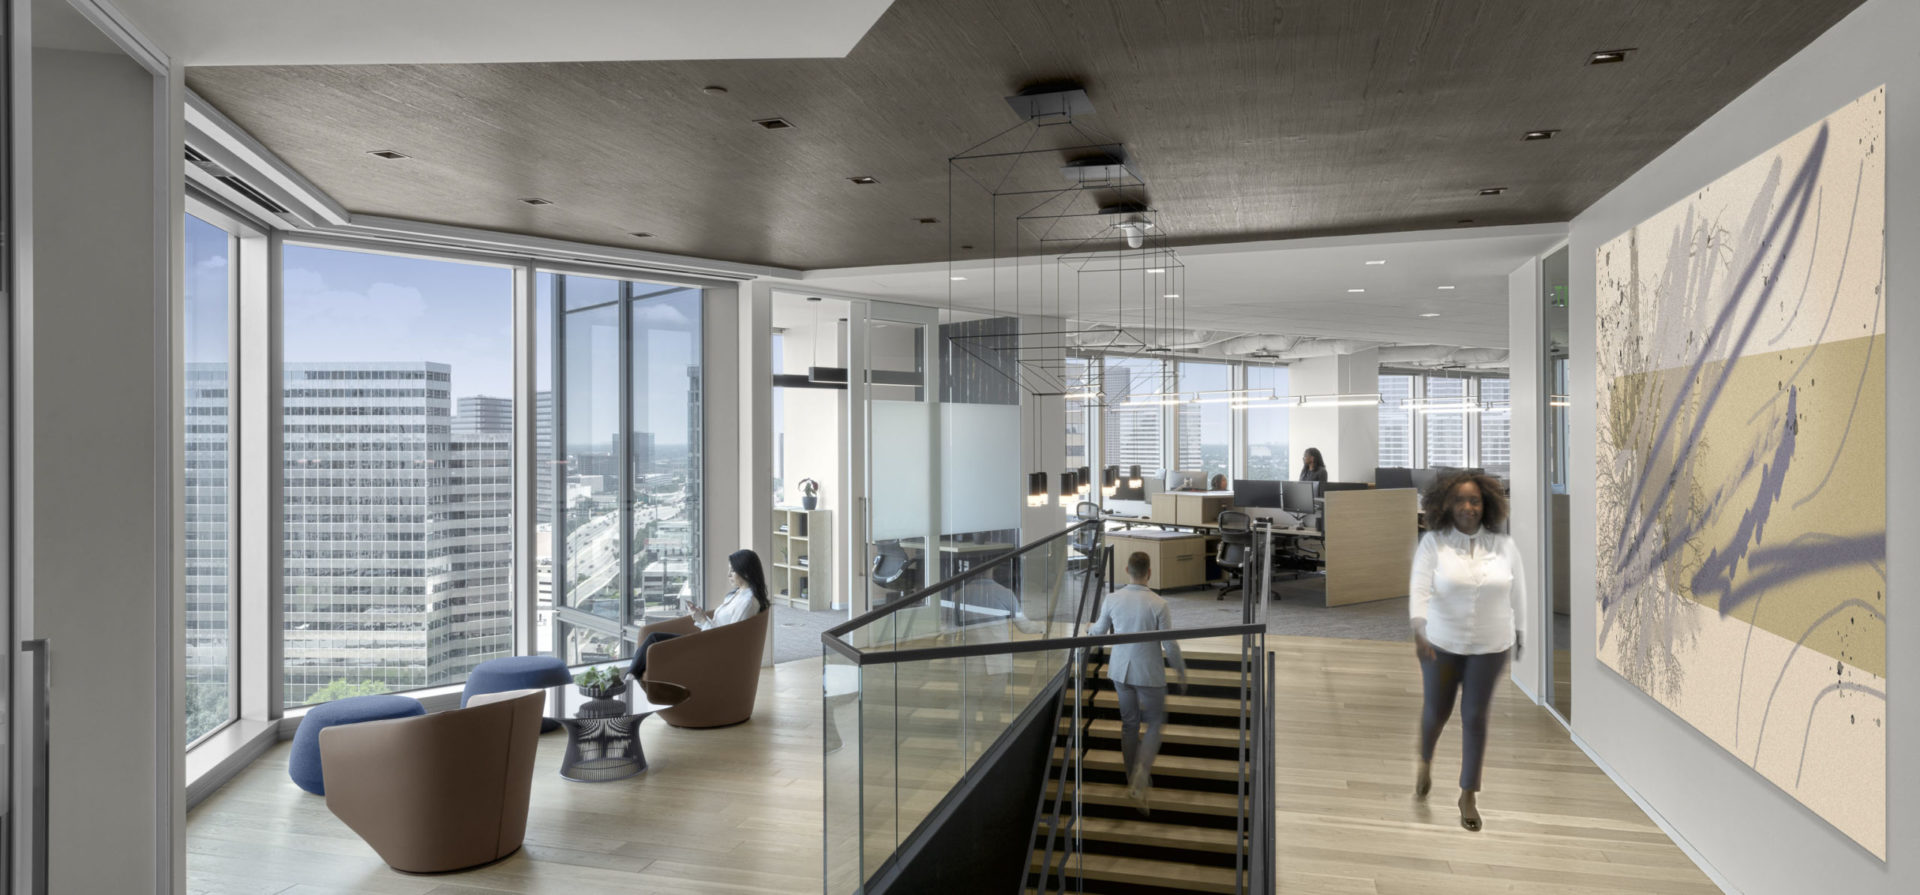 Hedge Fund Company / Think Tank Renovation and Expansion